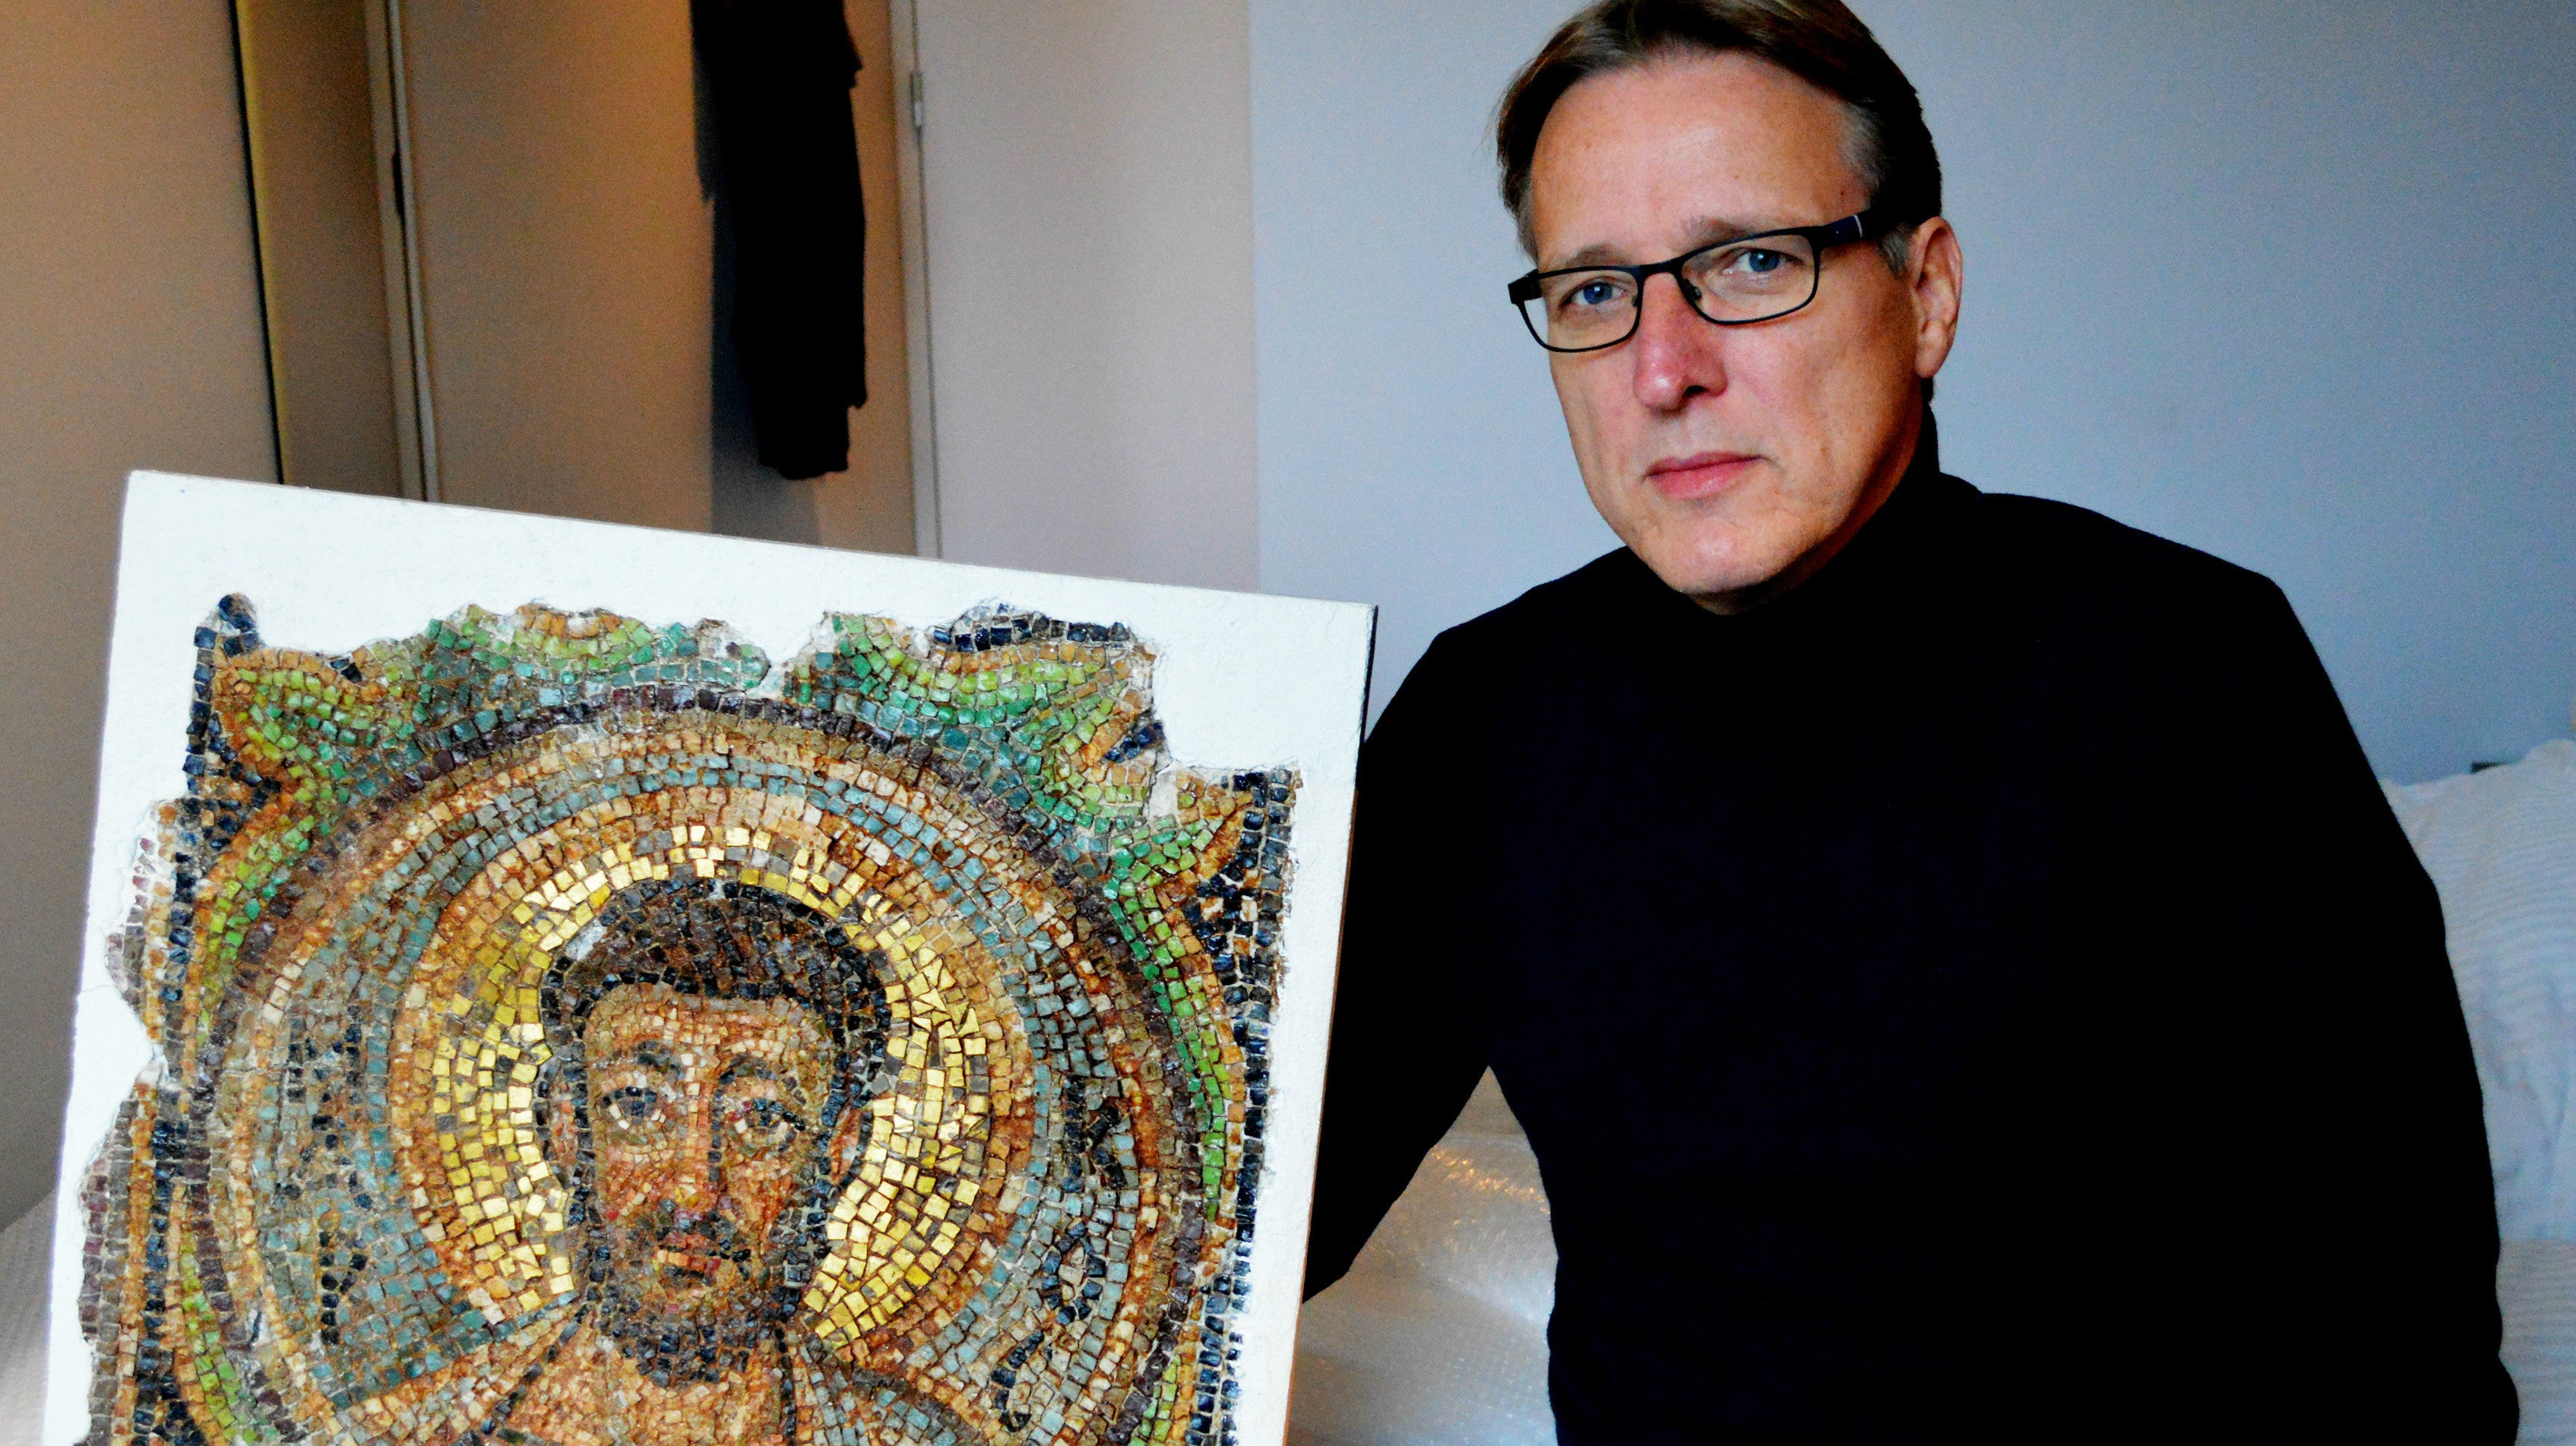 A Renowned Art Detective Just Recovered A Stolen 1,600-Year-Old Mosaic